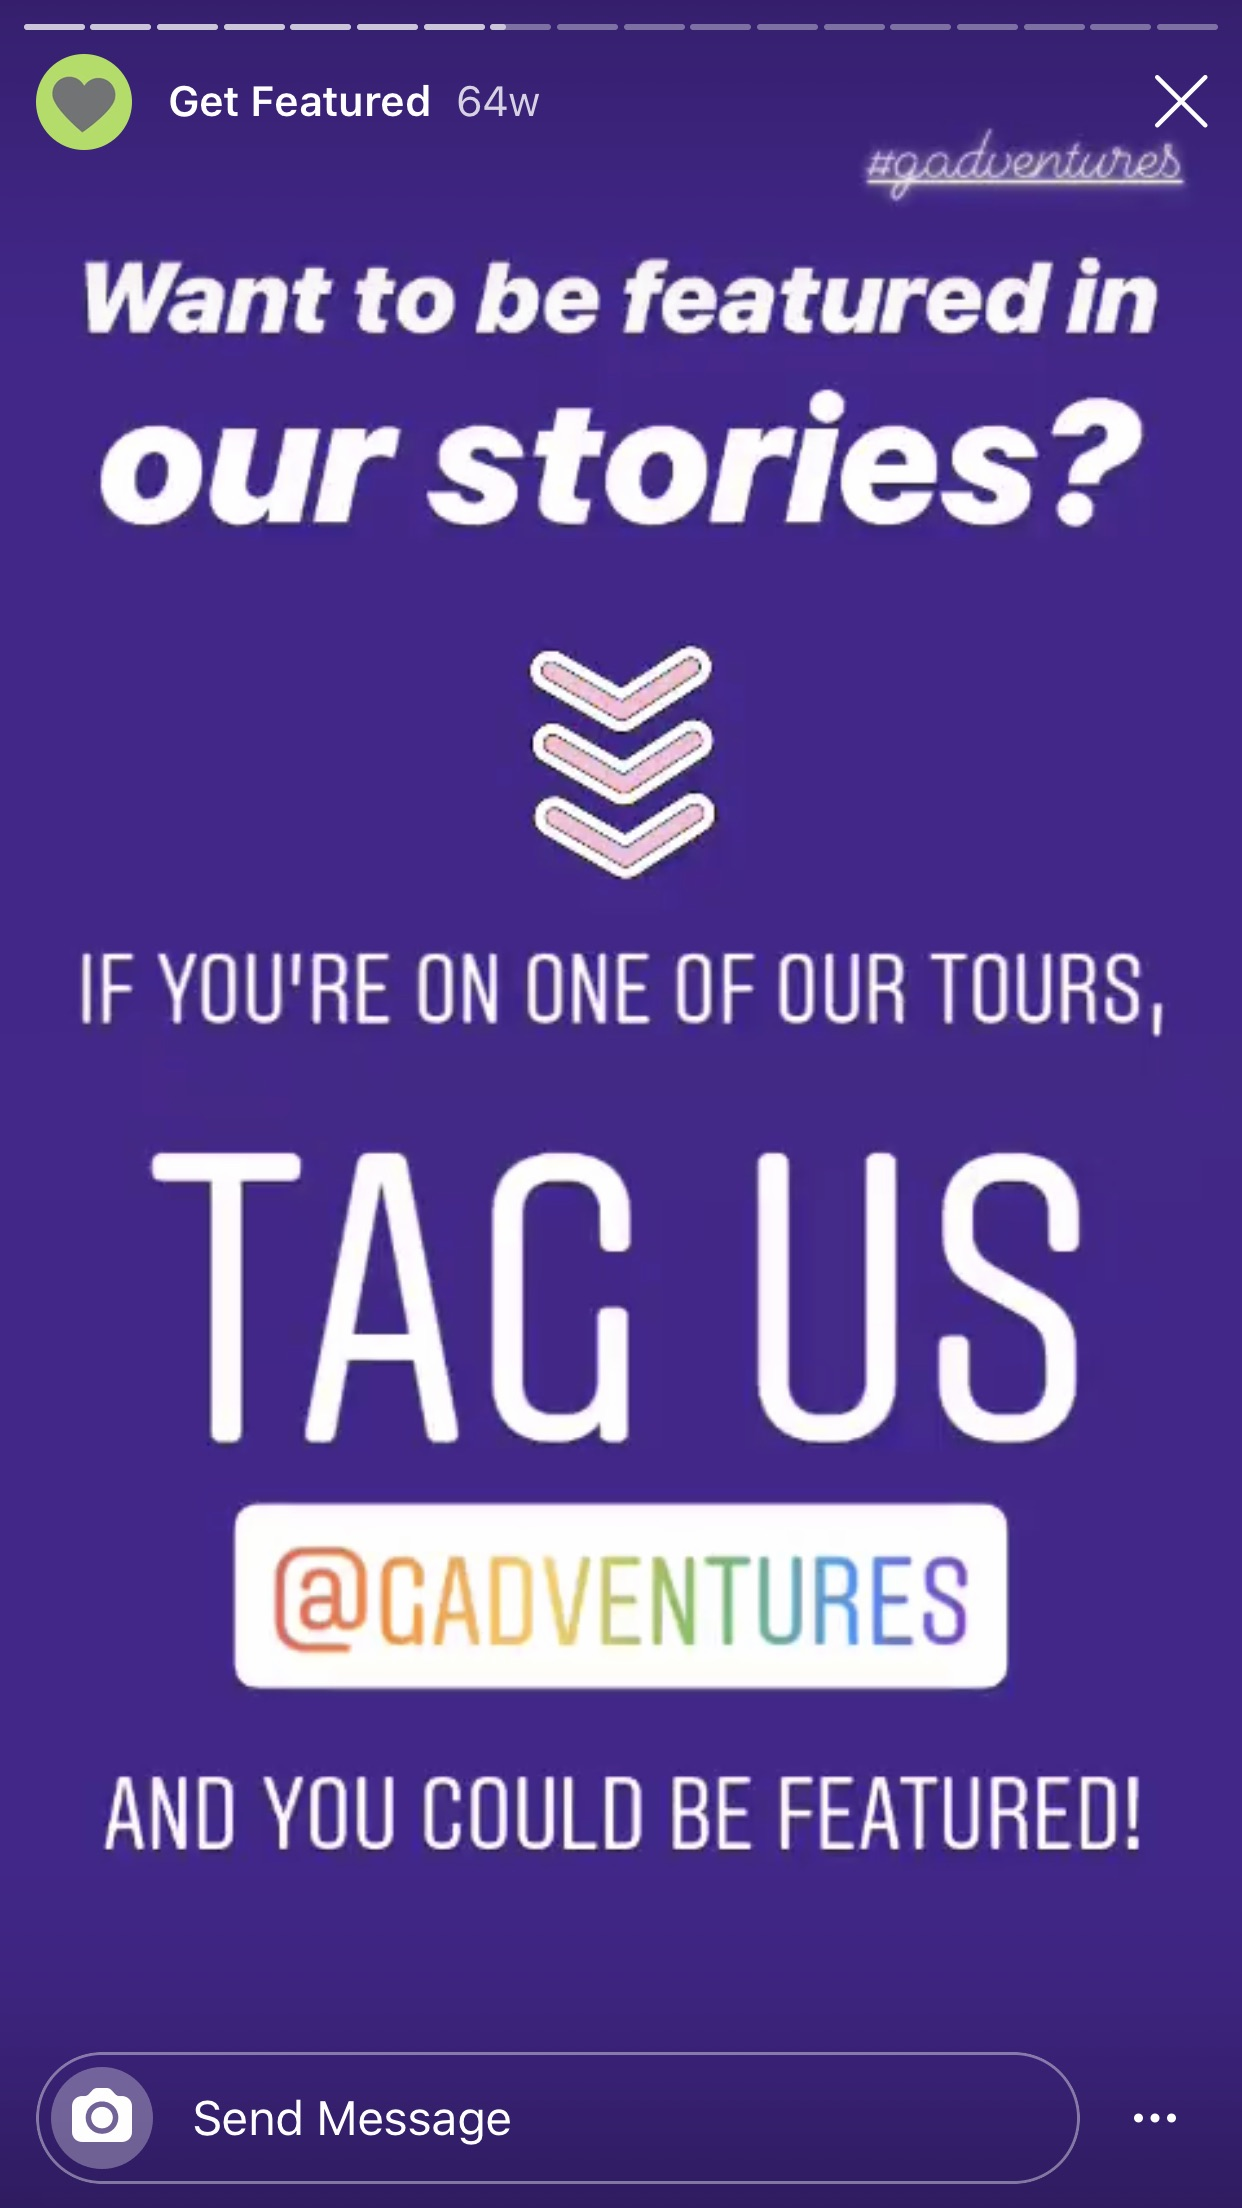 Feature submissions from your audience on Instagram Stories